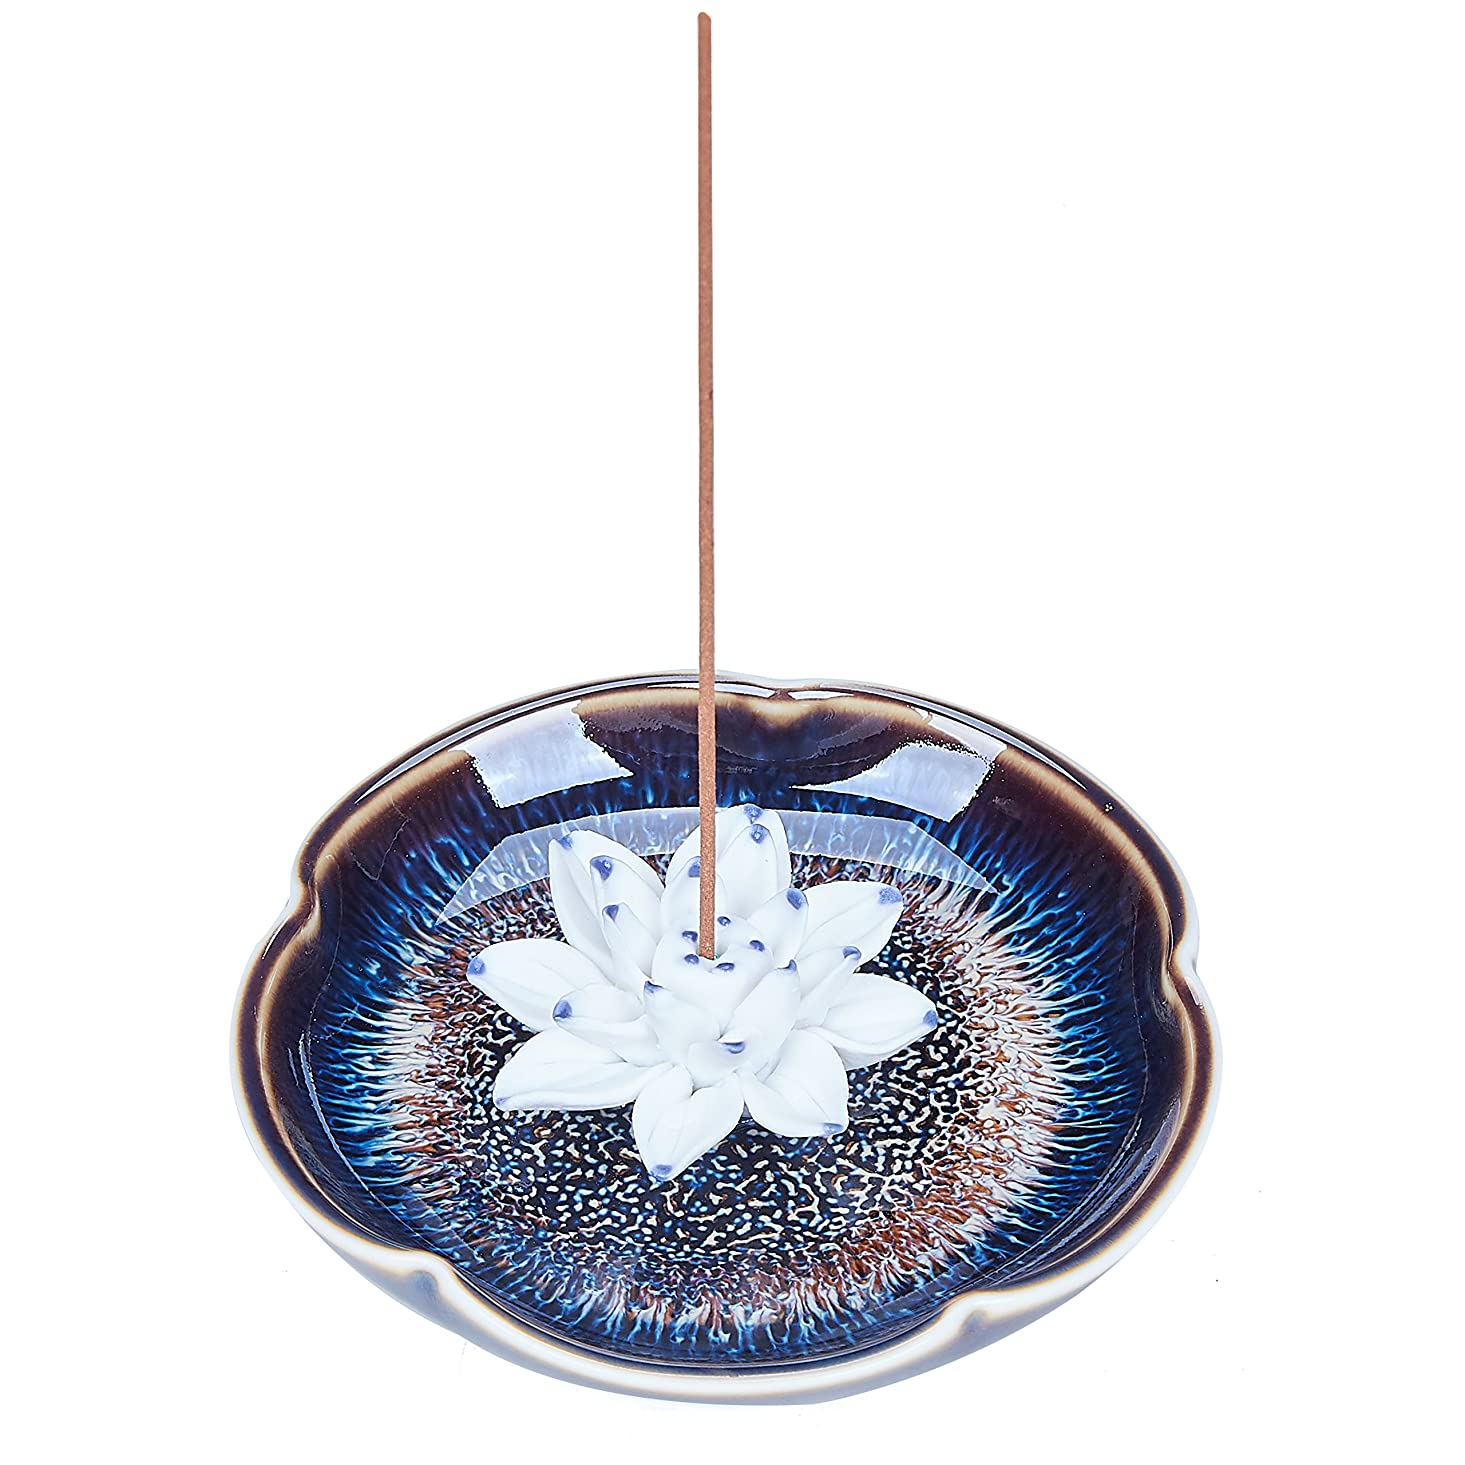 崩壊うなずくアシュリータファーマンUOON Incense Stick Burner Holder - Handmade Ceramic Lotus Flower Incense Burner Bowl Ash Catcher Tray Plate (Lake Blue)